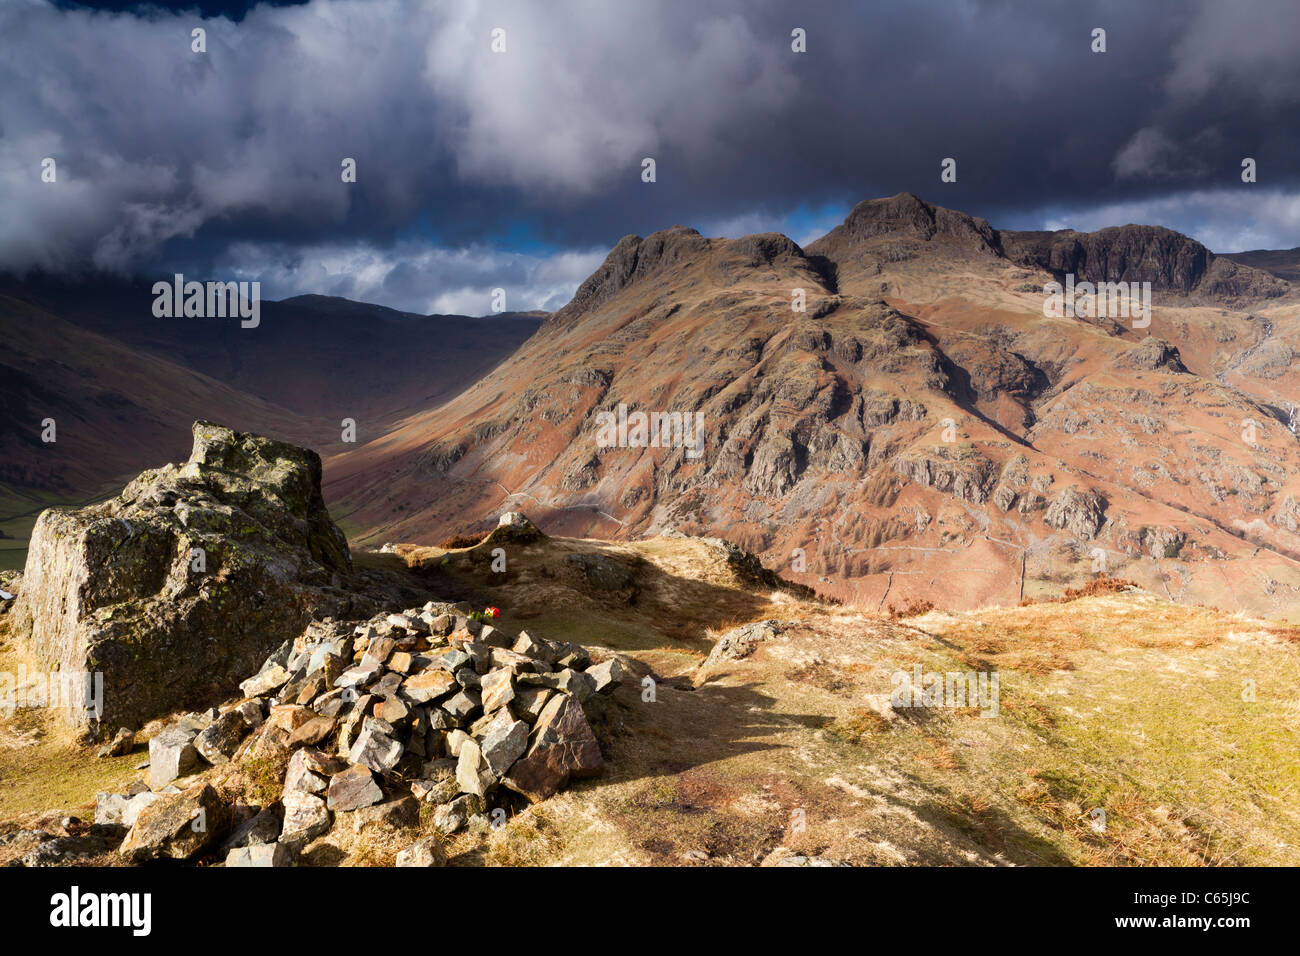 The Langdale Pikes under heavy skies. - Stock Image